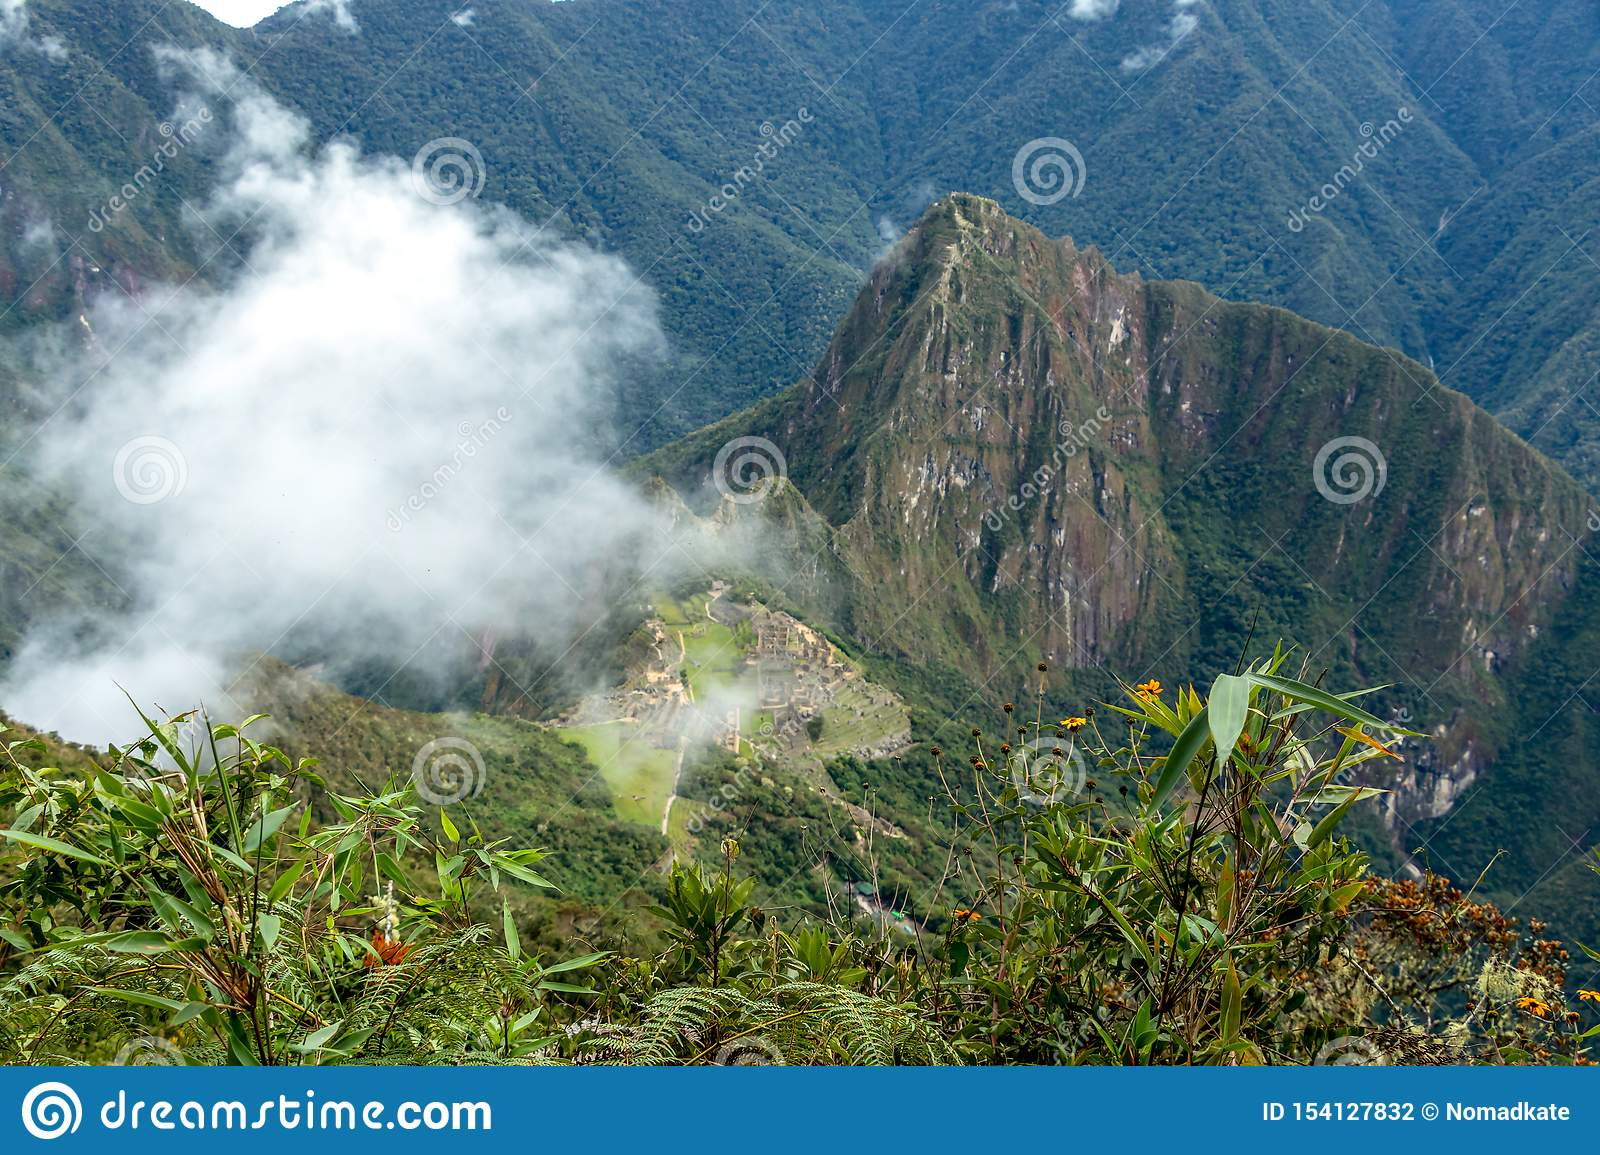 Huayna Picchu, or Wayna Pikchu, mountain in clouds rises over Machu Picchu Inca citadel, lost city of the Incas